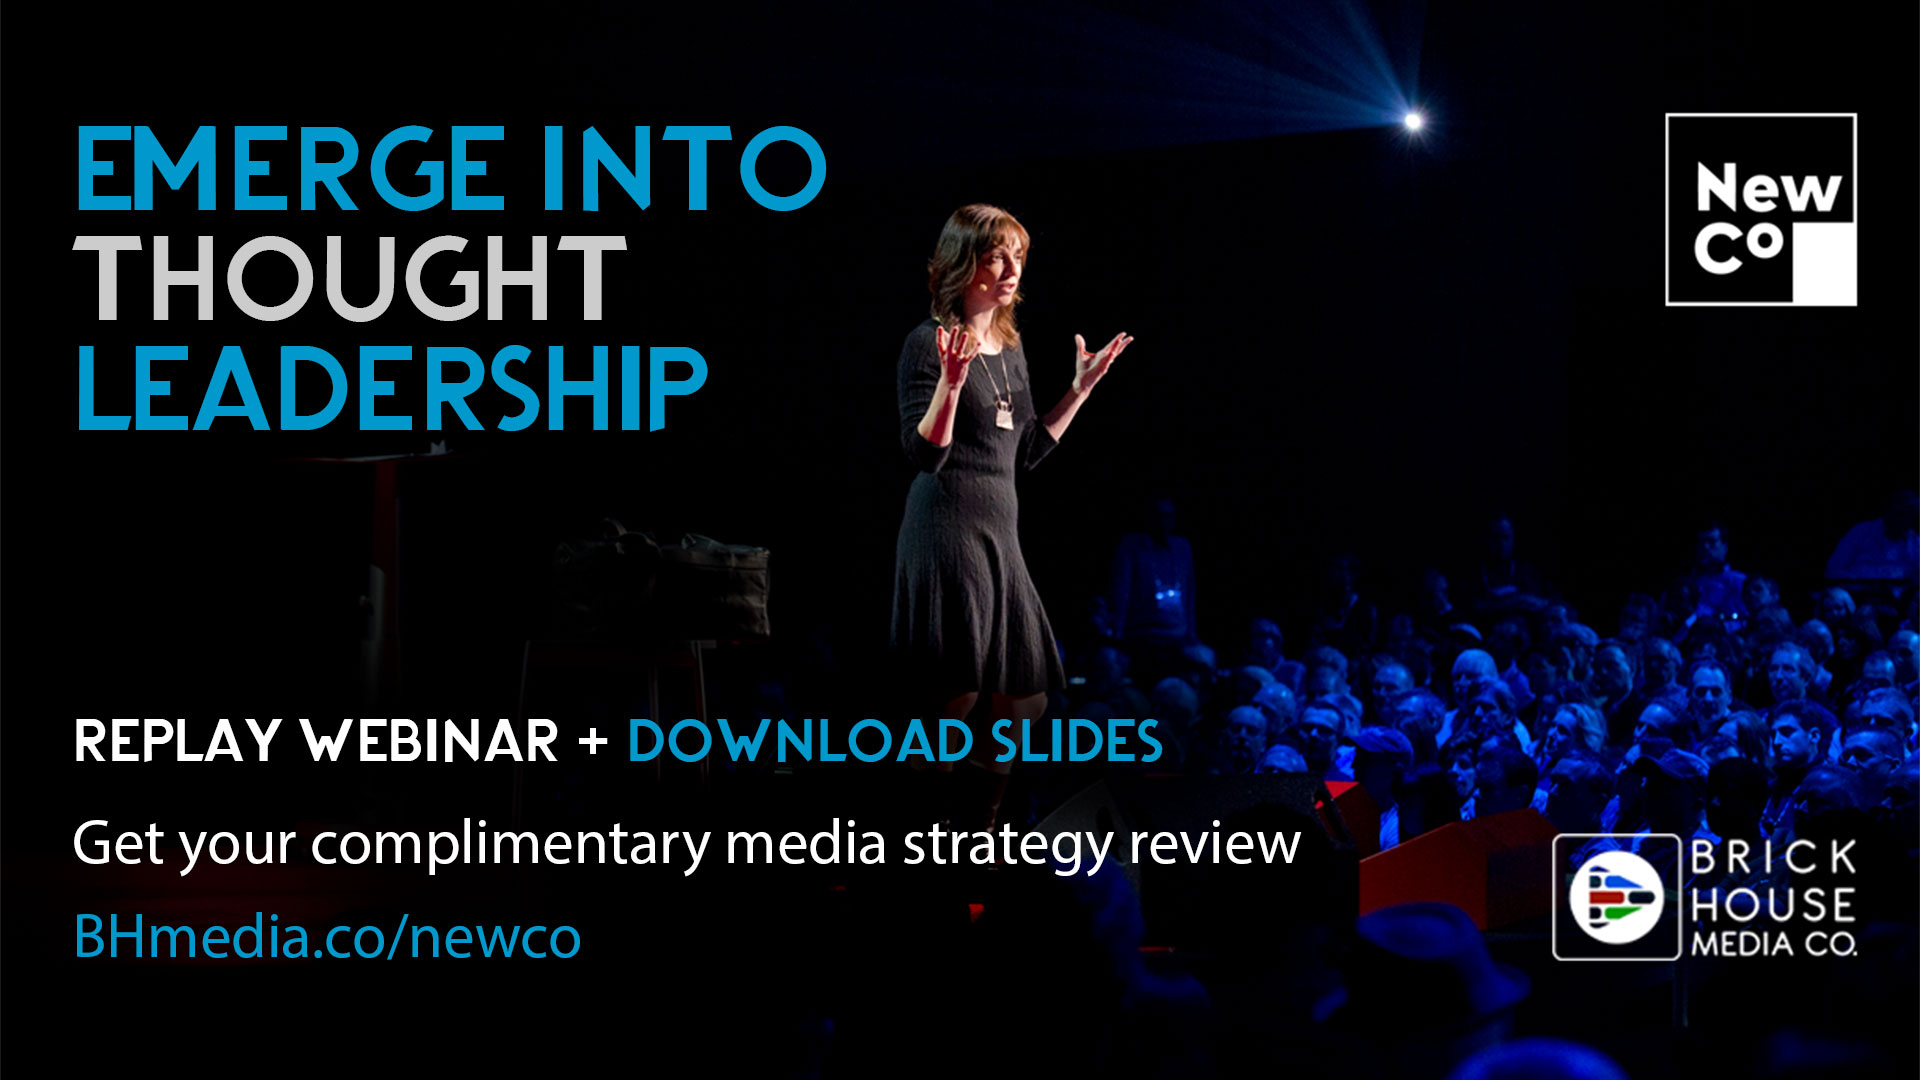 Example offer from the NewCo community - Webinars, downloads and replays for our affiliate communities!